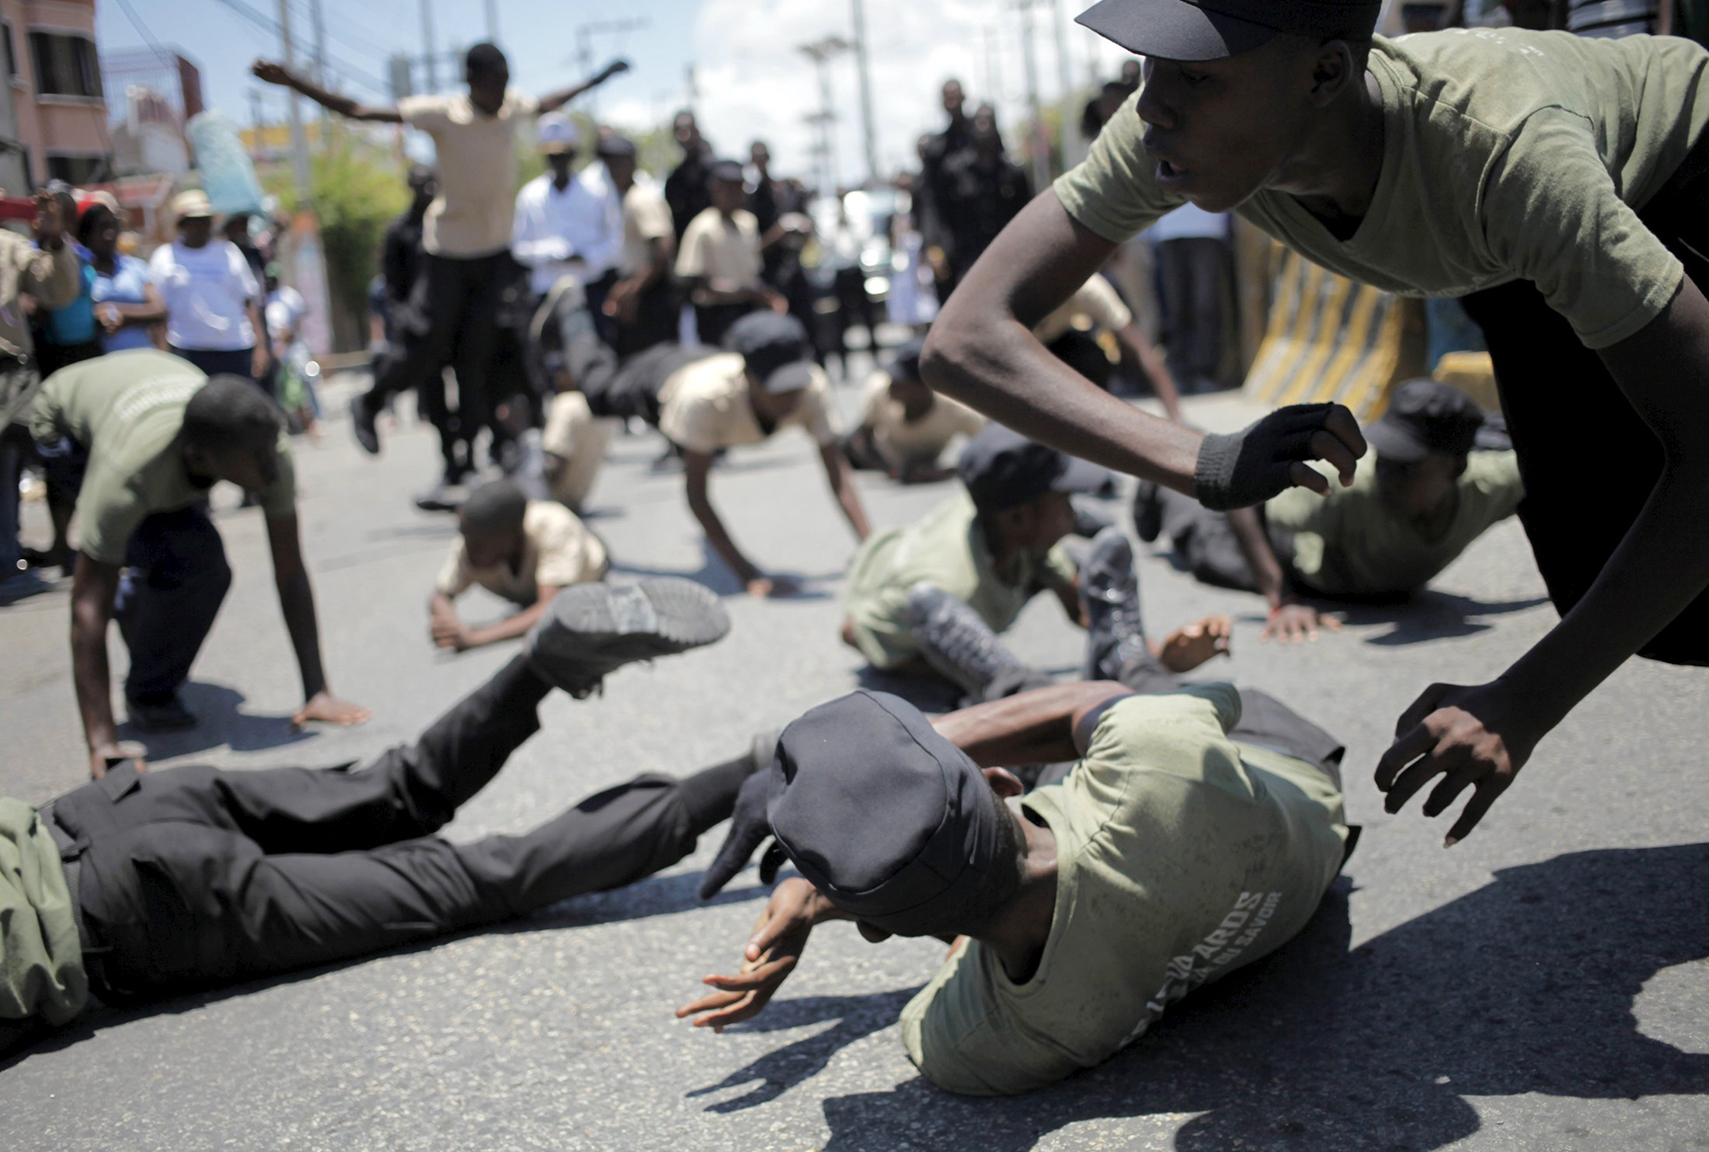 Haitian children show their skills during a march in celebrations for National Haitian Flag Day in the streets of Port-au-Prince